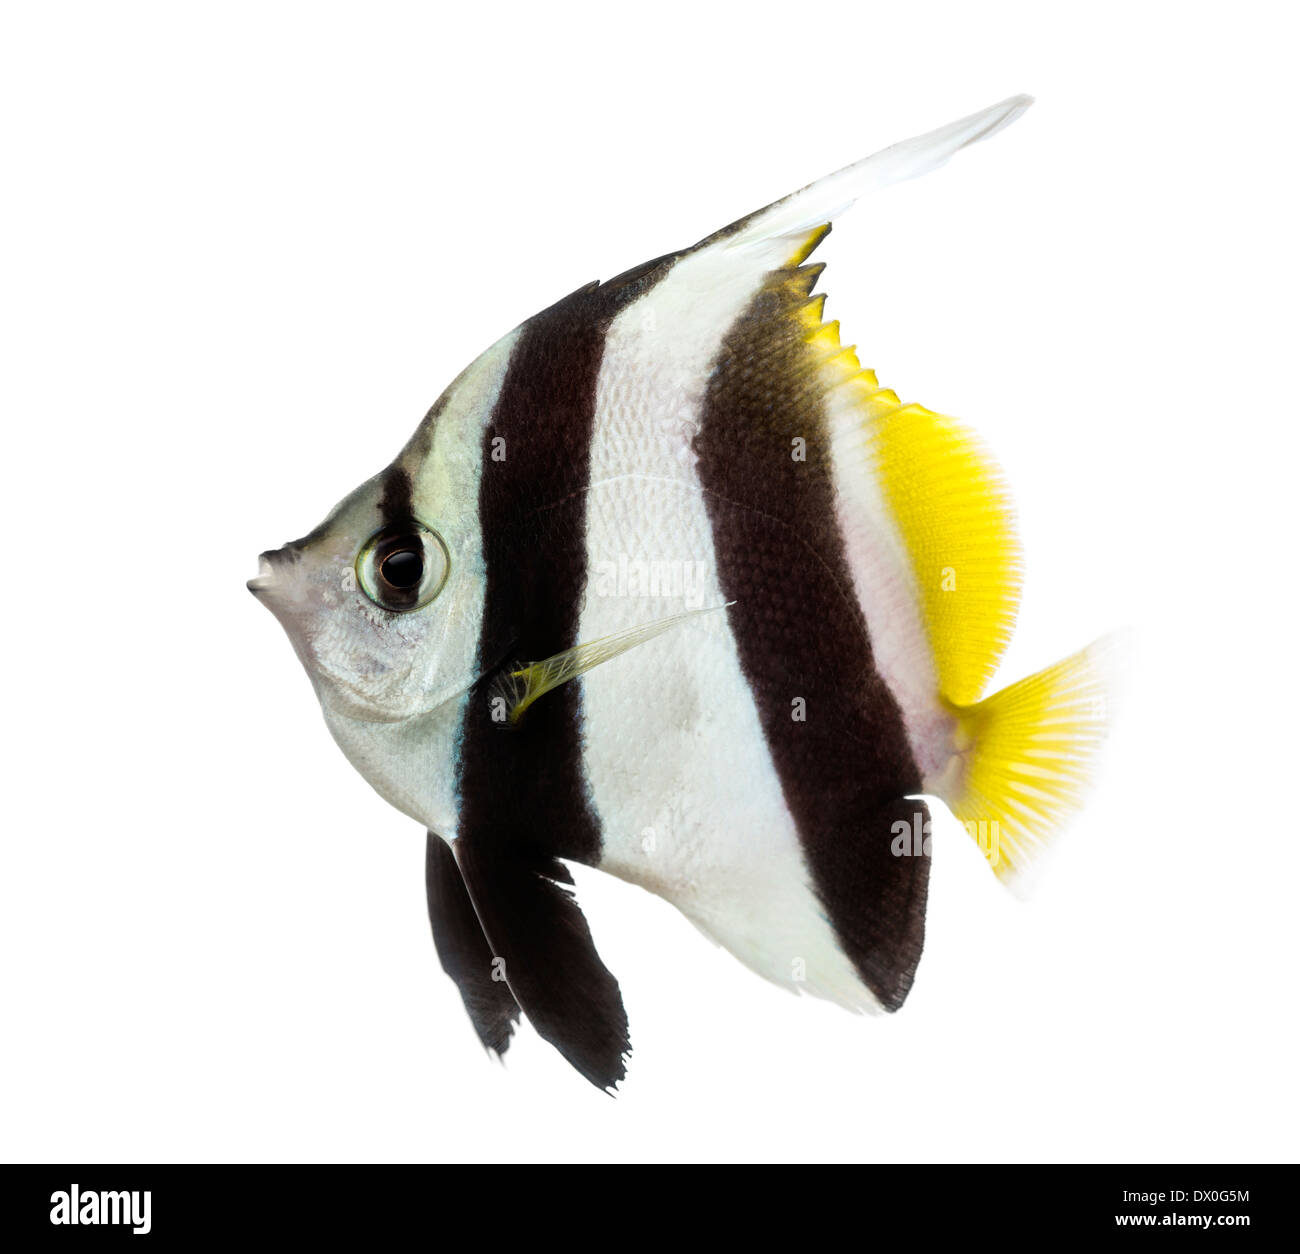 Side view of a Pennant Coralfish, Heniochus acuminatus, against white background - Stock Image